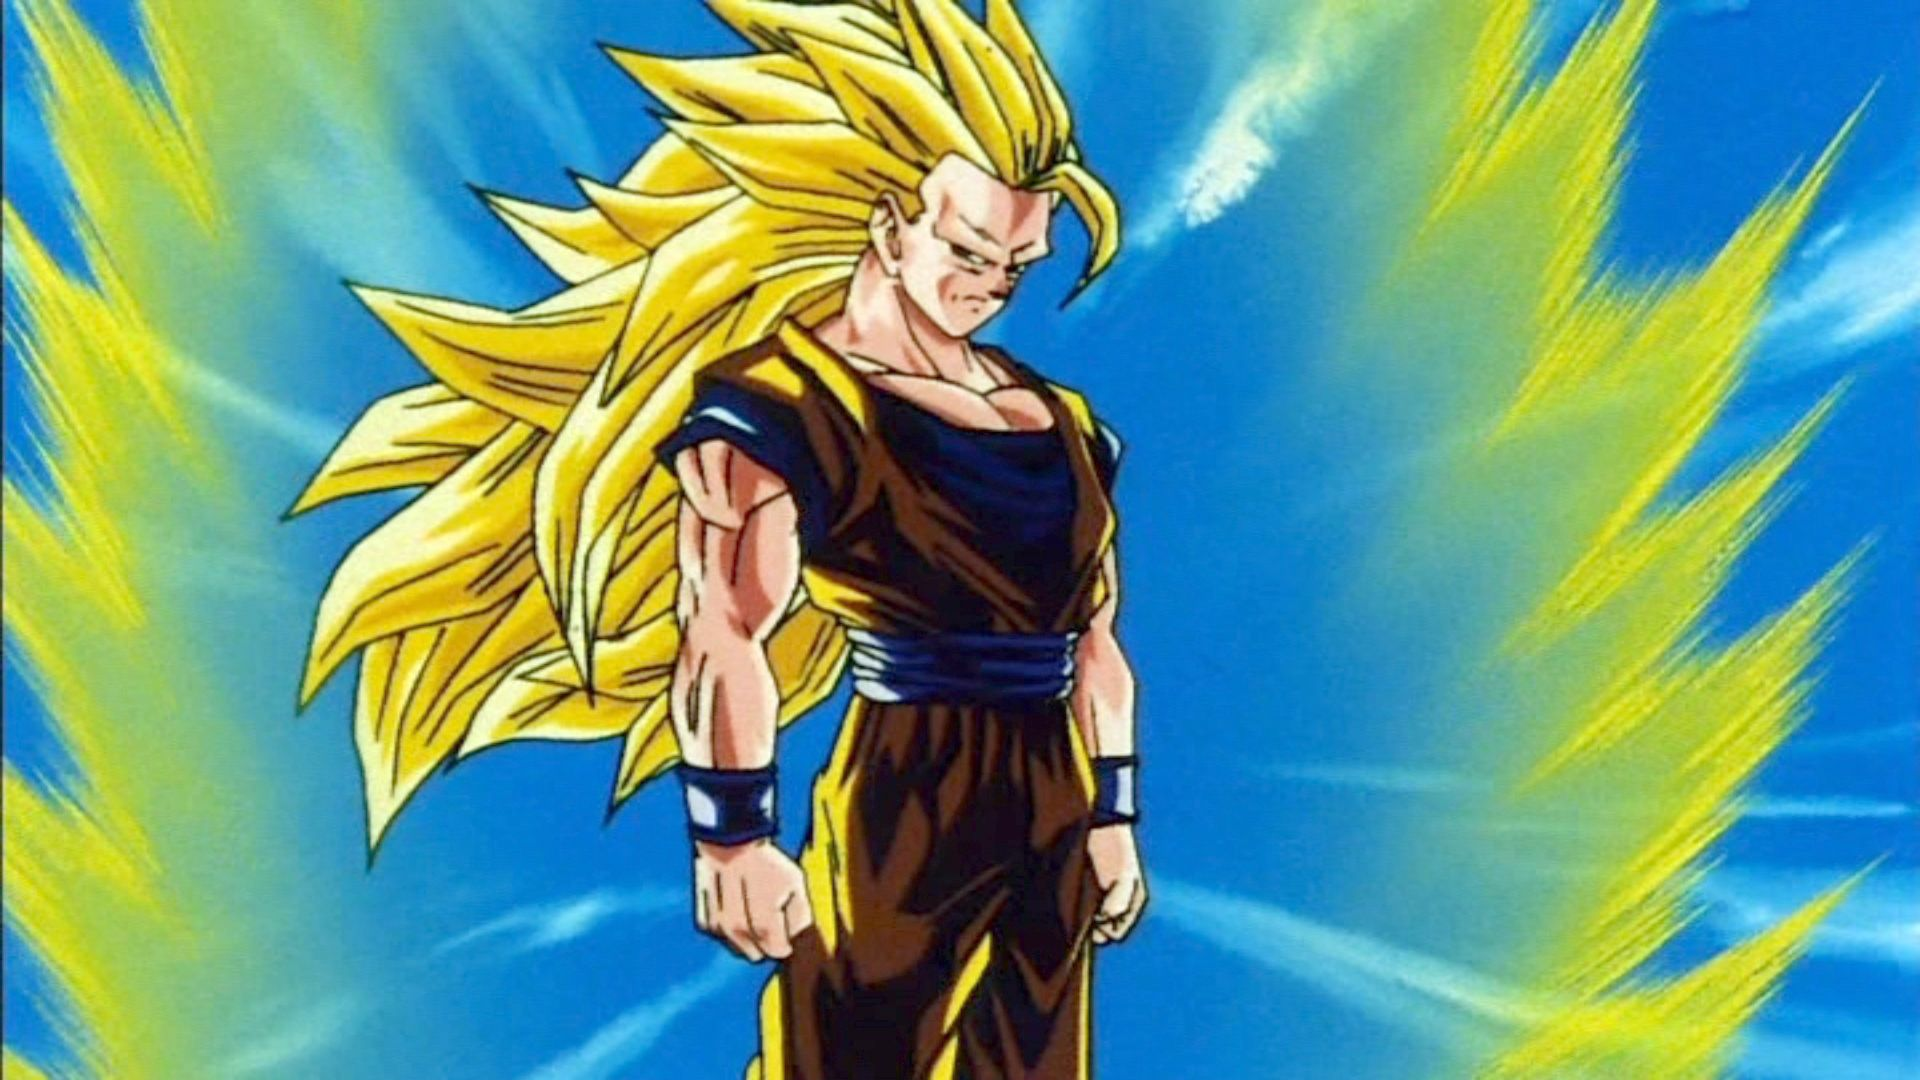 Dbz 1080p Wallpaper Best Dbz Quotes Download Moving Dbz Wallpapers Gallery